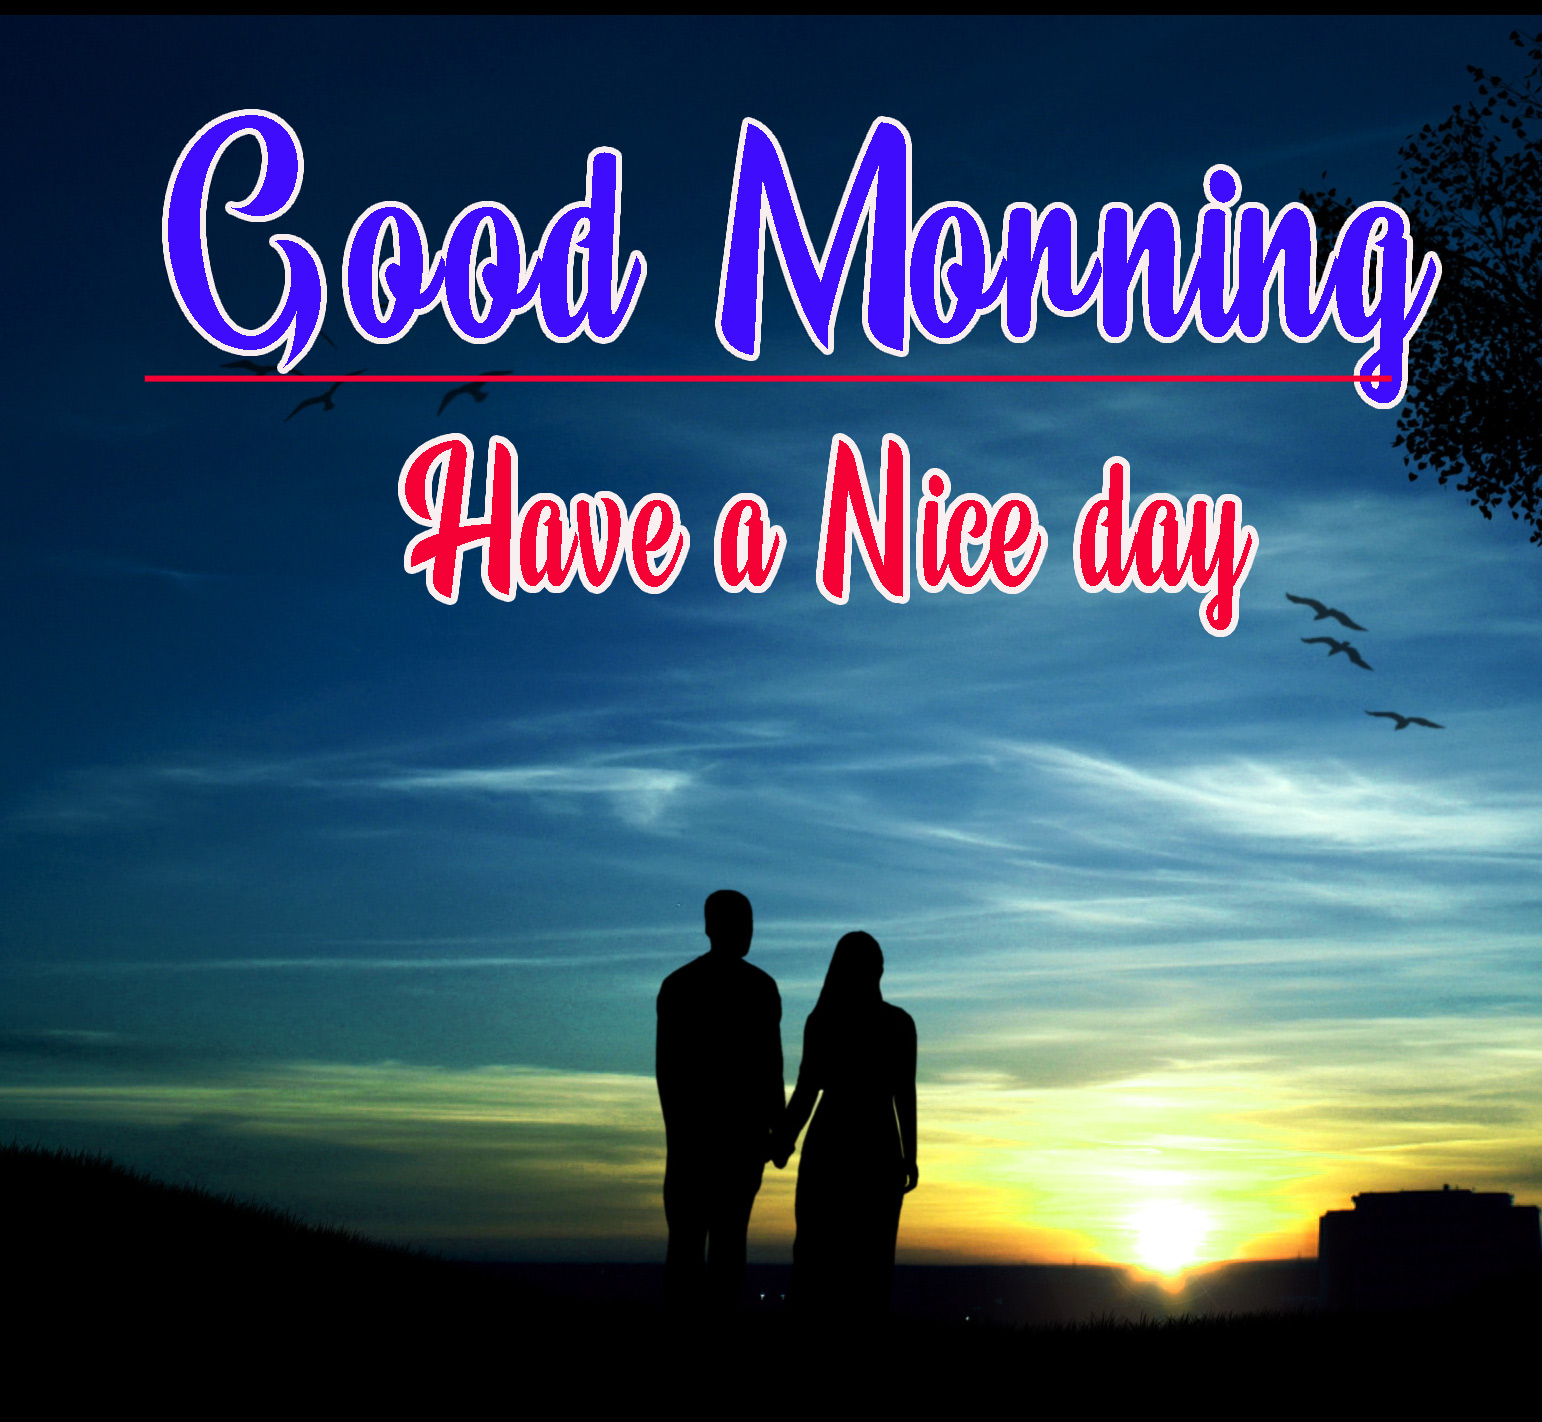 Romantic Good Morning Wallpaper Download